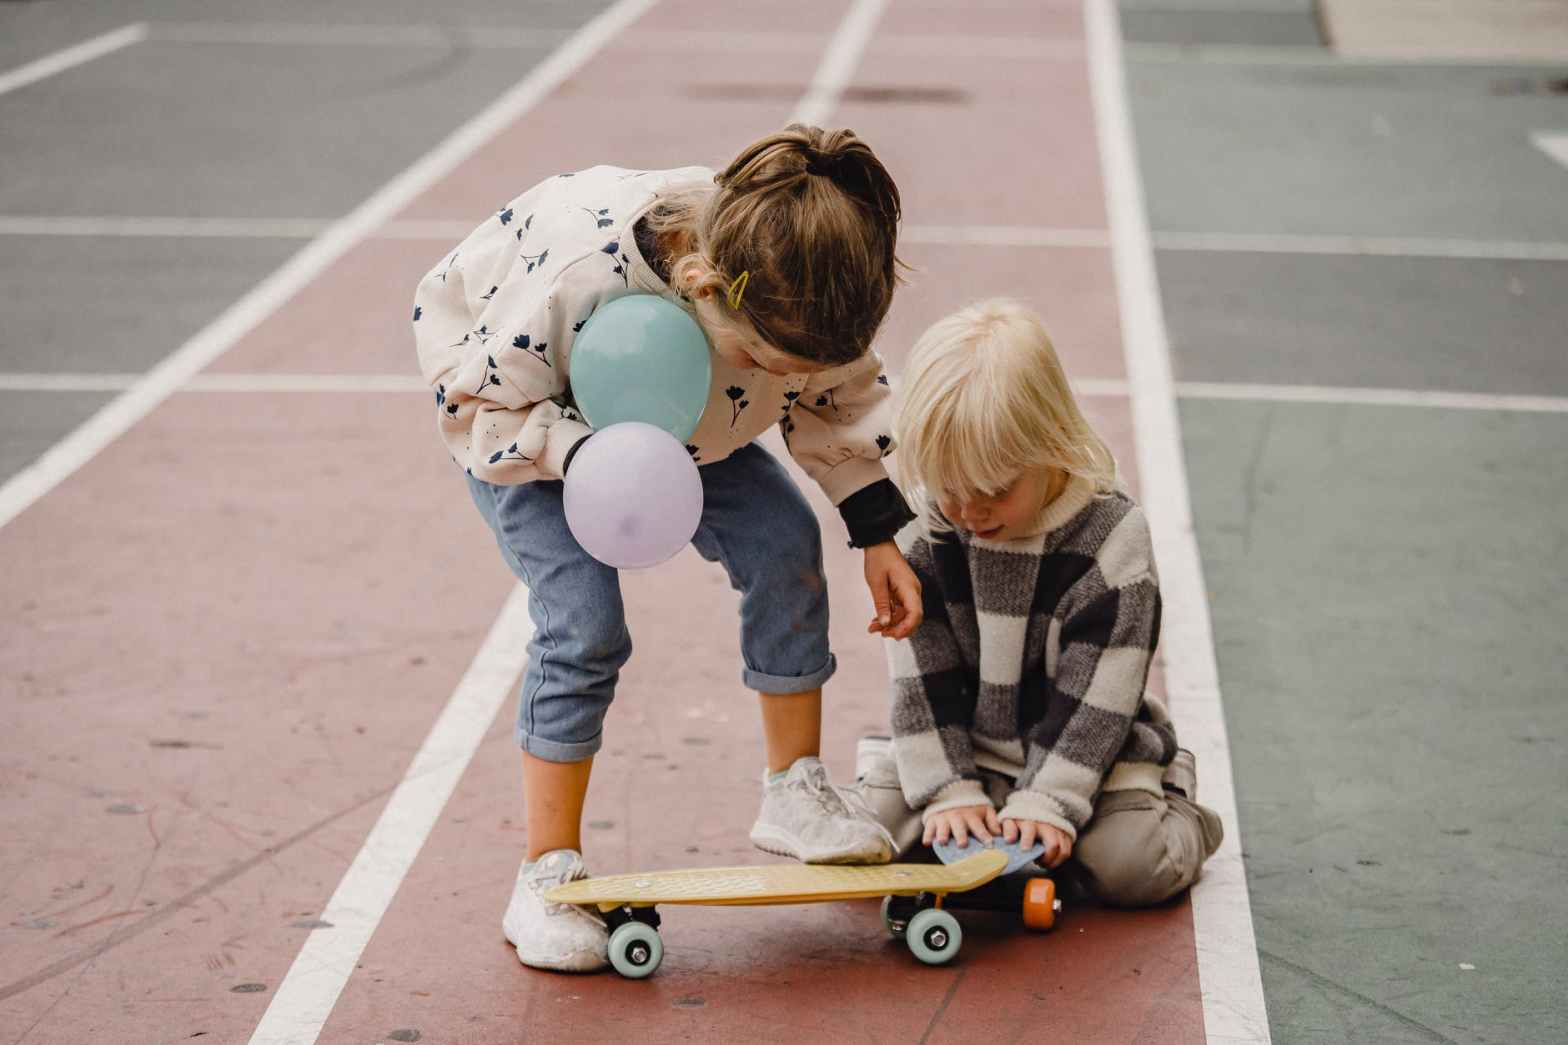 anonymous girlfriends playing with balloons and skateboard on sports ground